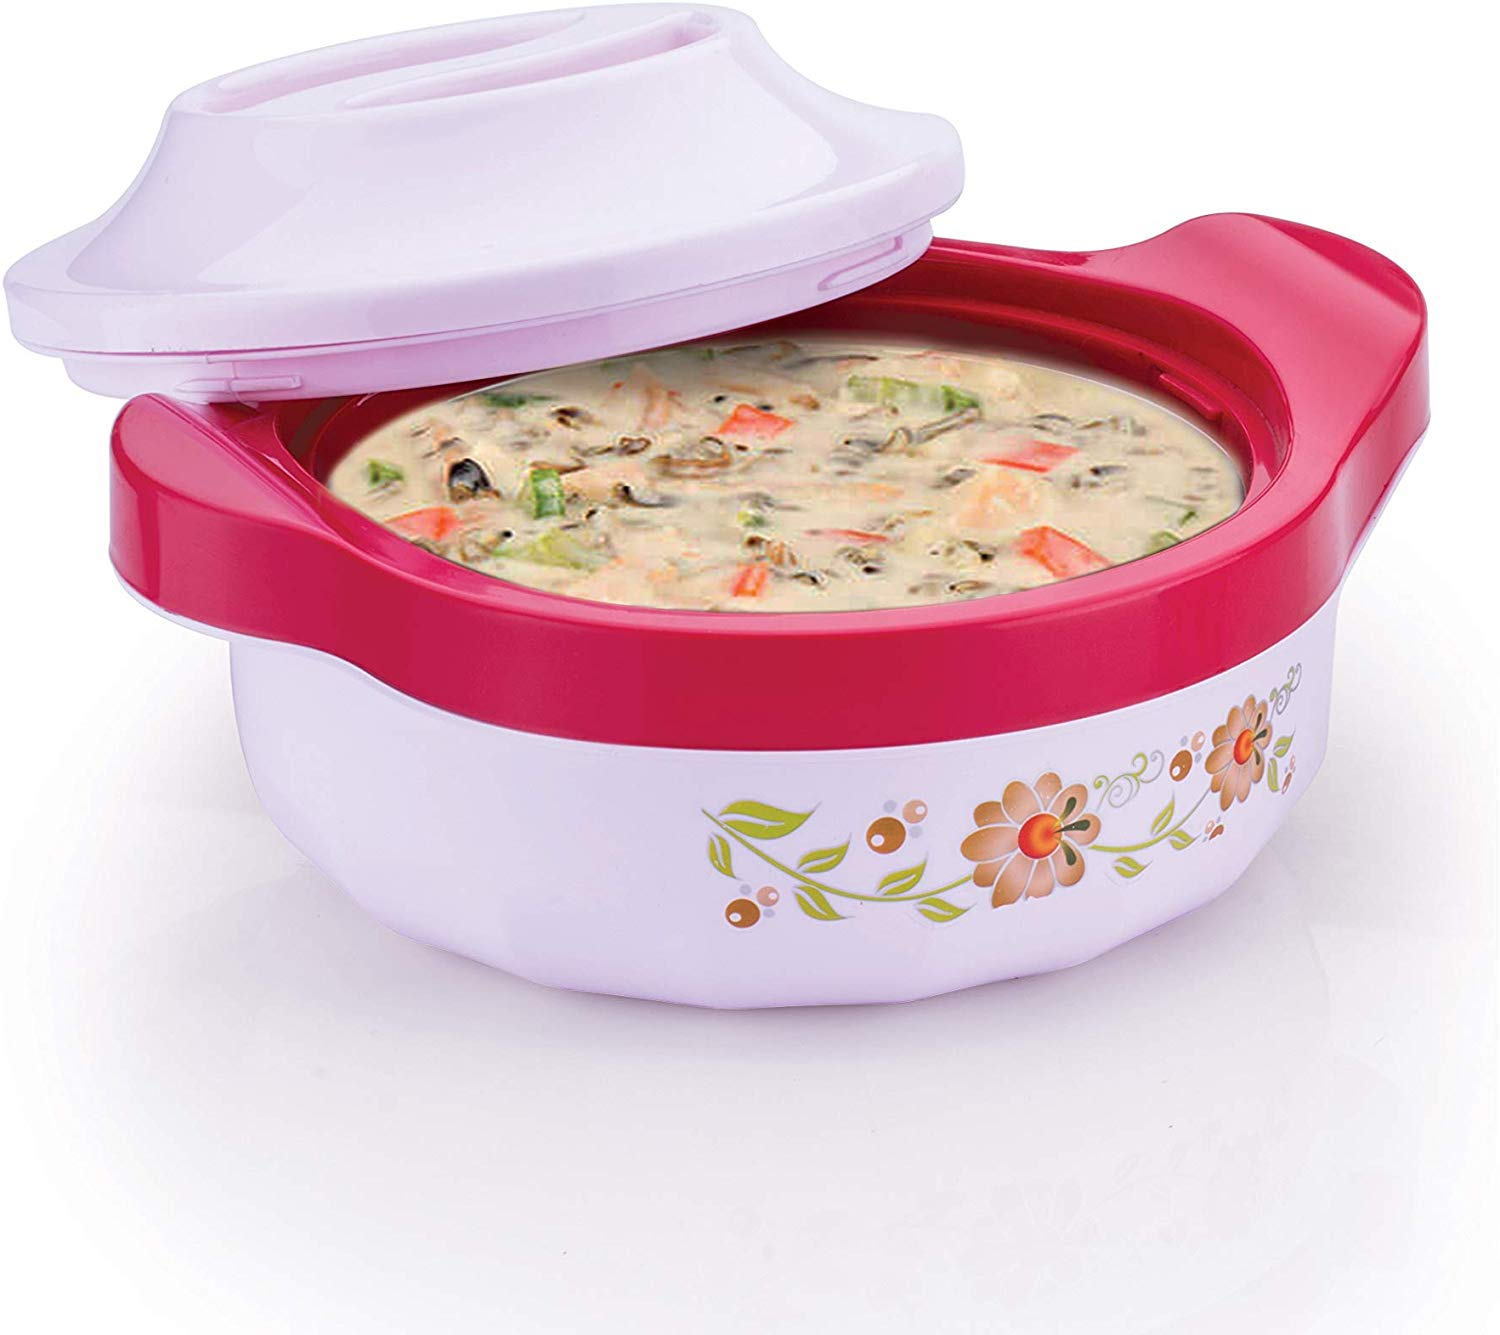 Kuber Industries Floral Design 2 Pieces High Quality Plastic Insulated Steel Casseroles,750 ML (Light Pink) - CTKTC30901